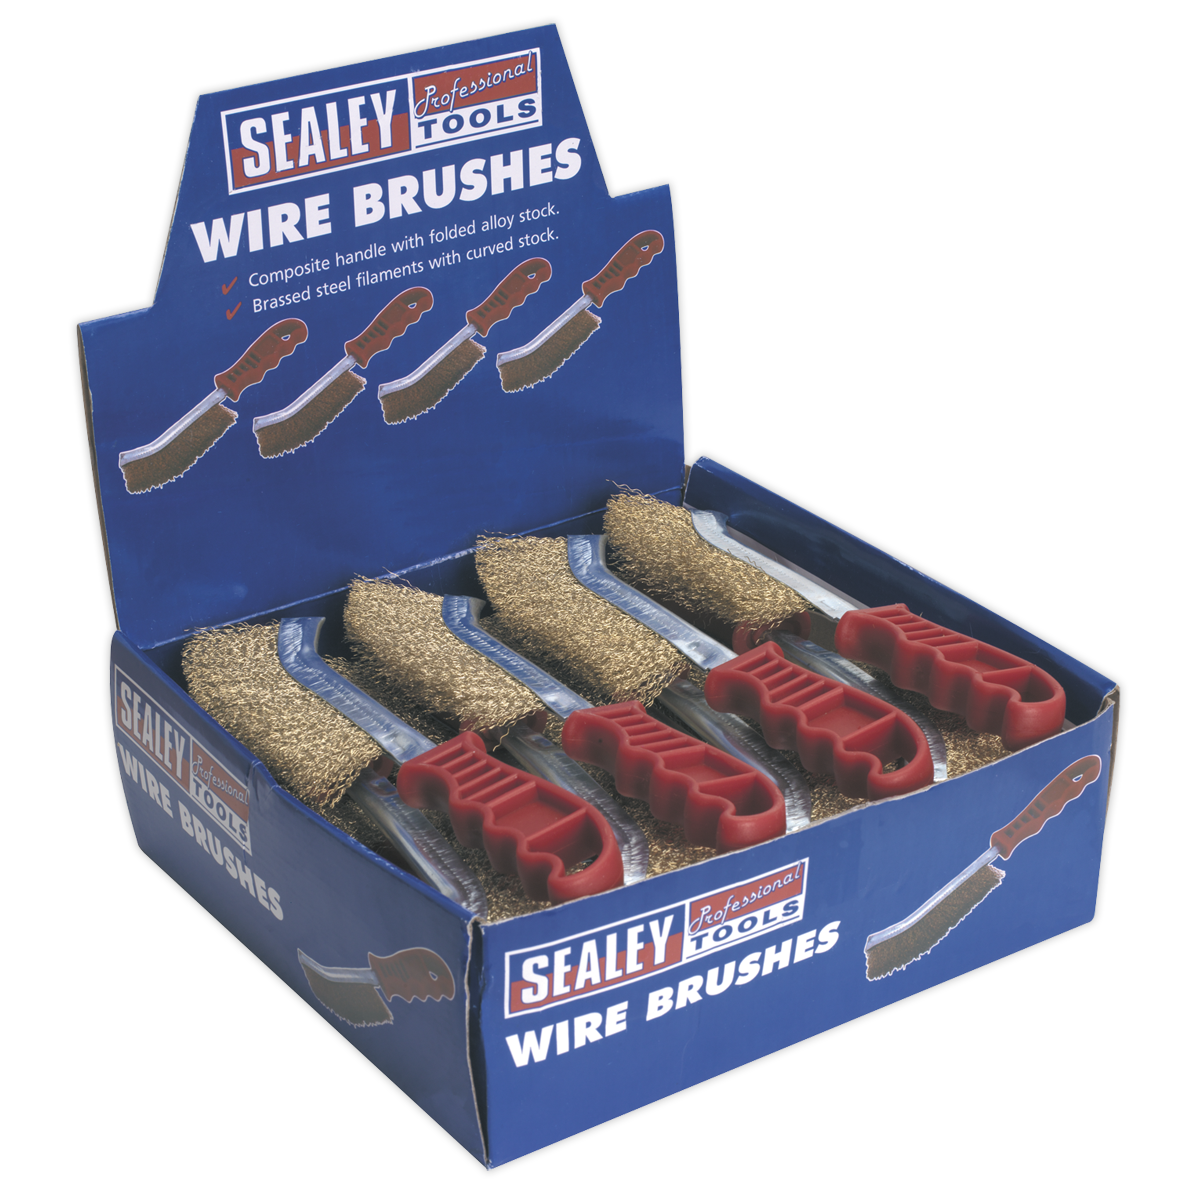 Wire Brush Brassed Steel Plastic Handle Display Box of 24